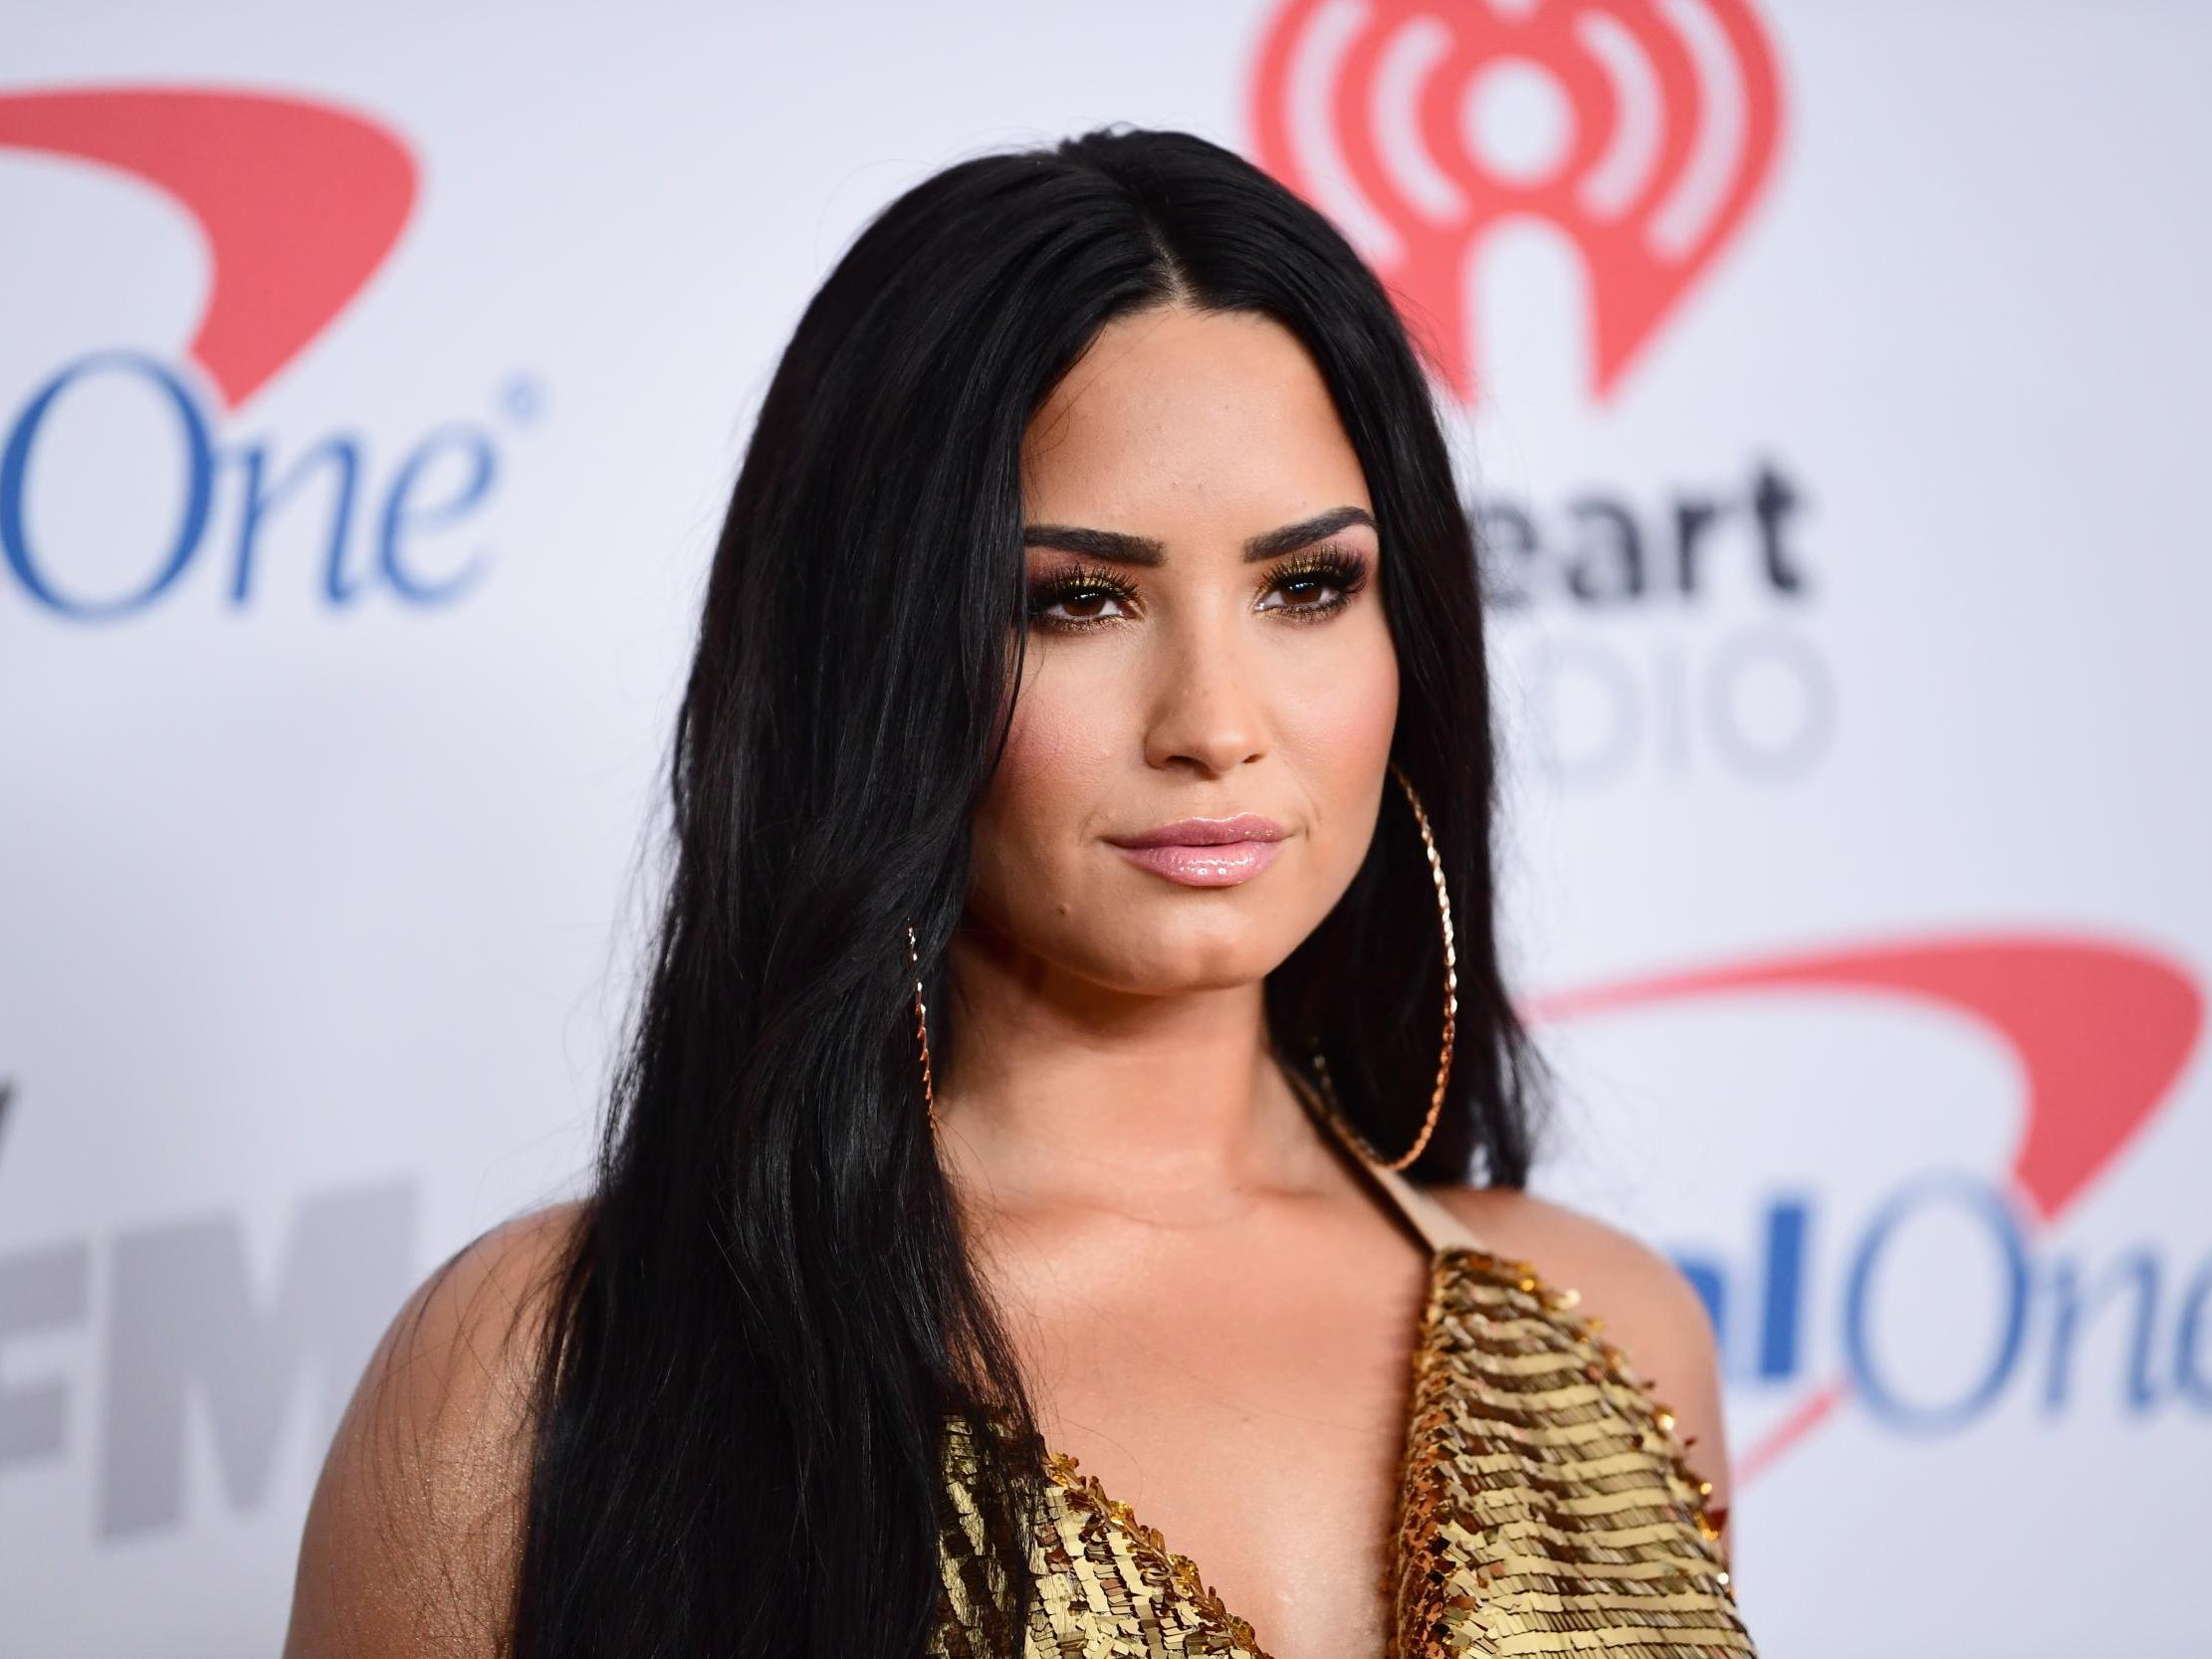 Demi Lovato says she was 'underweight and freezing' during Disney filming because of eating disorder